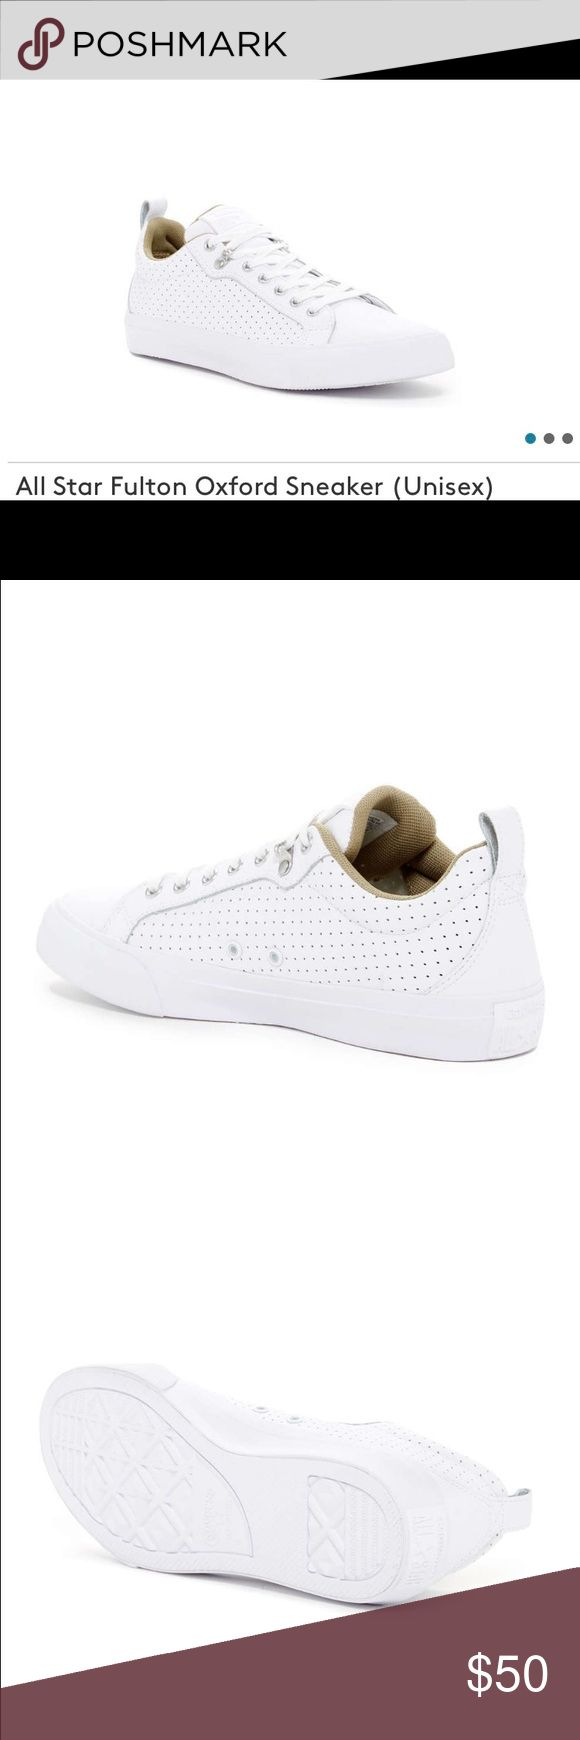 Converse All Star Fulton Oxford Sneaker Men10/W12 Brand new in Box Converse All Star Fulton Oxford Sneaker size 10men/12women. All white color. Beautiful and clean look from converse, great for everyday wear. $70 Retail Price make me a reasonable offer Converse Shoes Sneakers